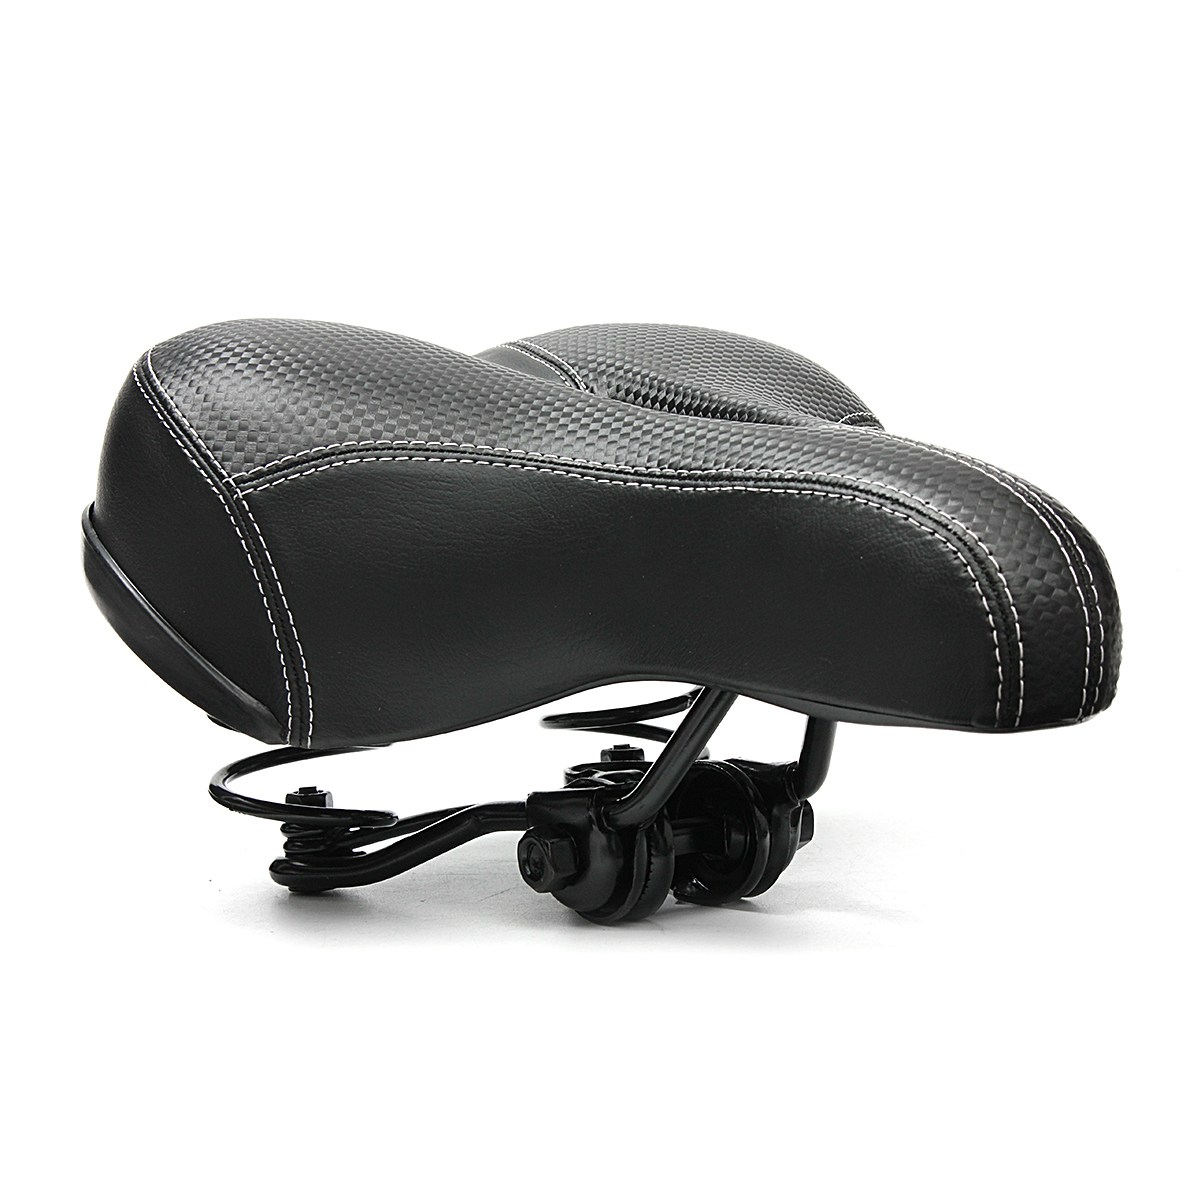 Thickened Bicycle Saddle Soft Outdoor Wide Big Bike Spring Seat Cushion